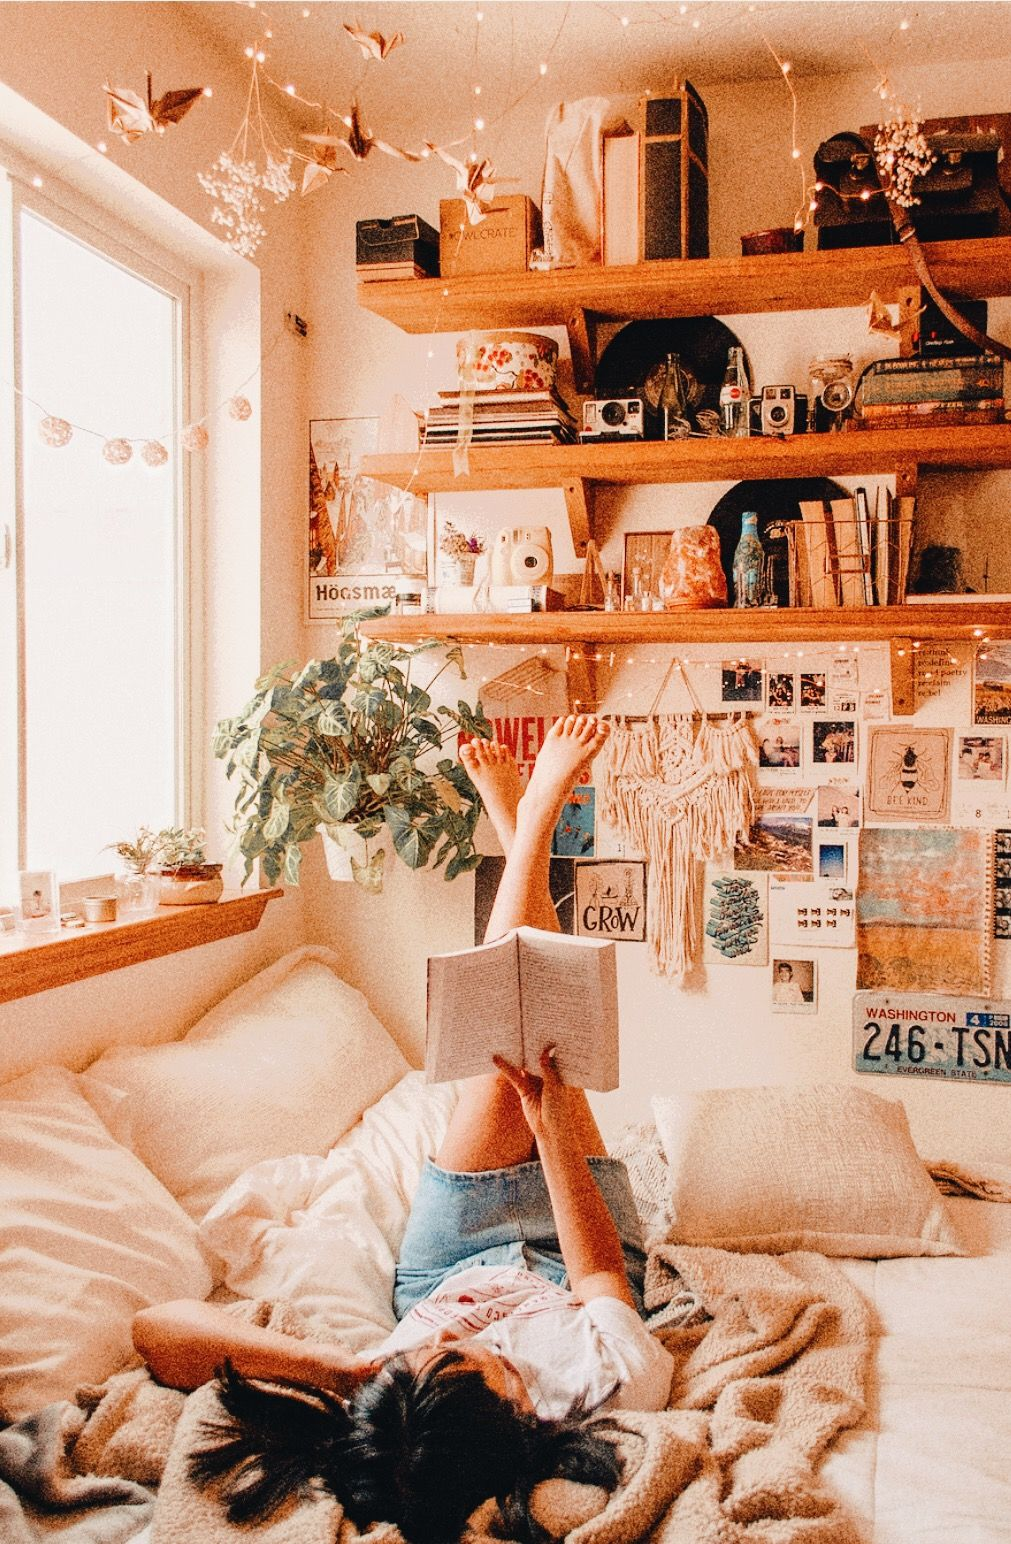 Not My Picture Bedroom Decor Tumblr Roomdecor Waiting Room